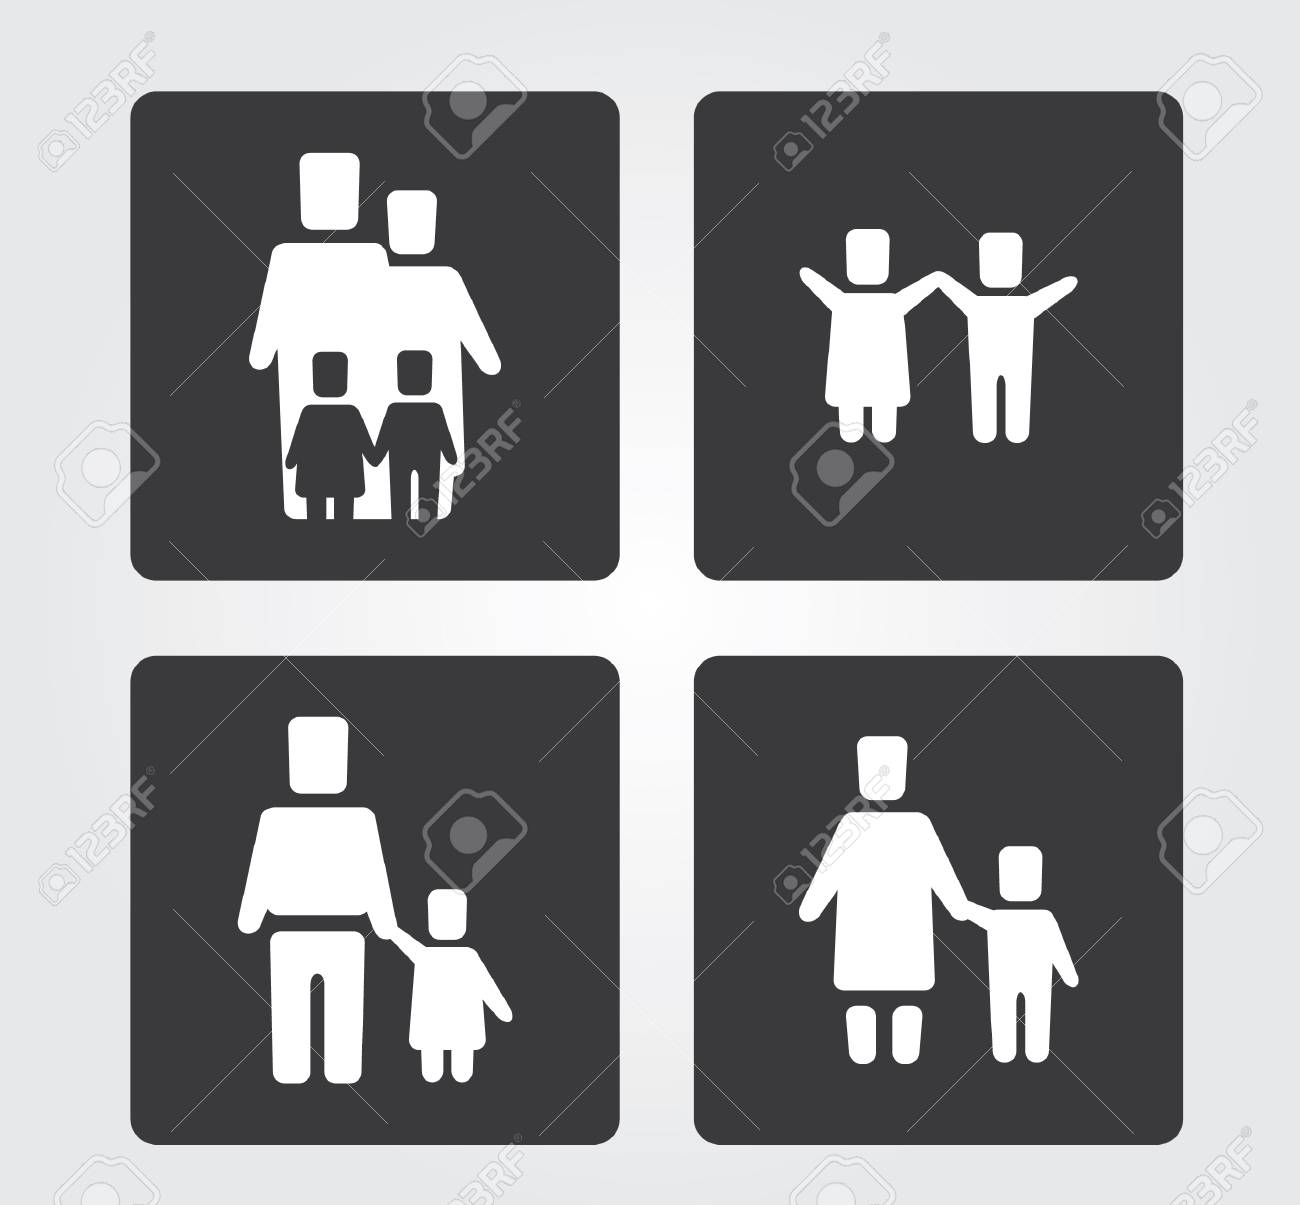 Simple web icon in set Stock Vector - 23451349